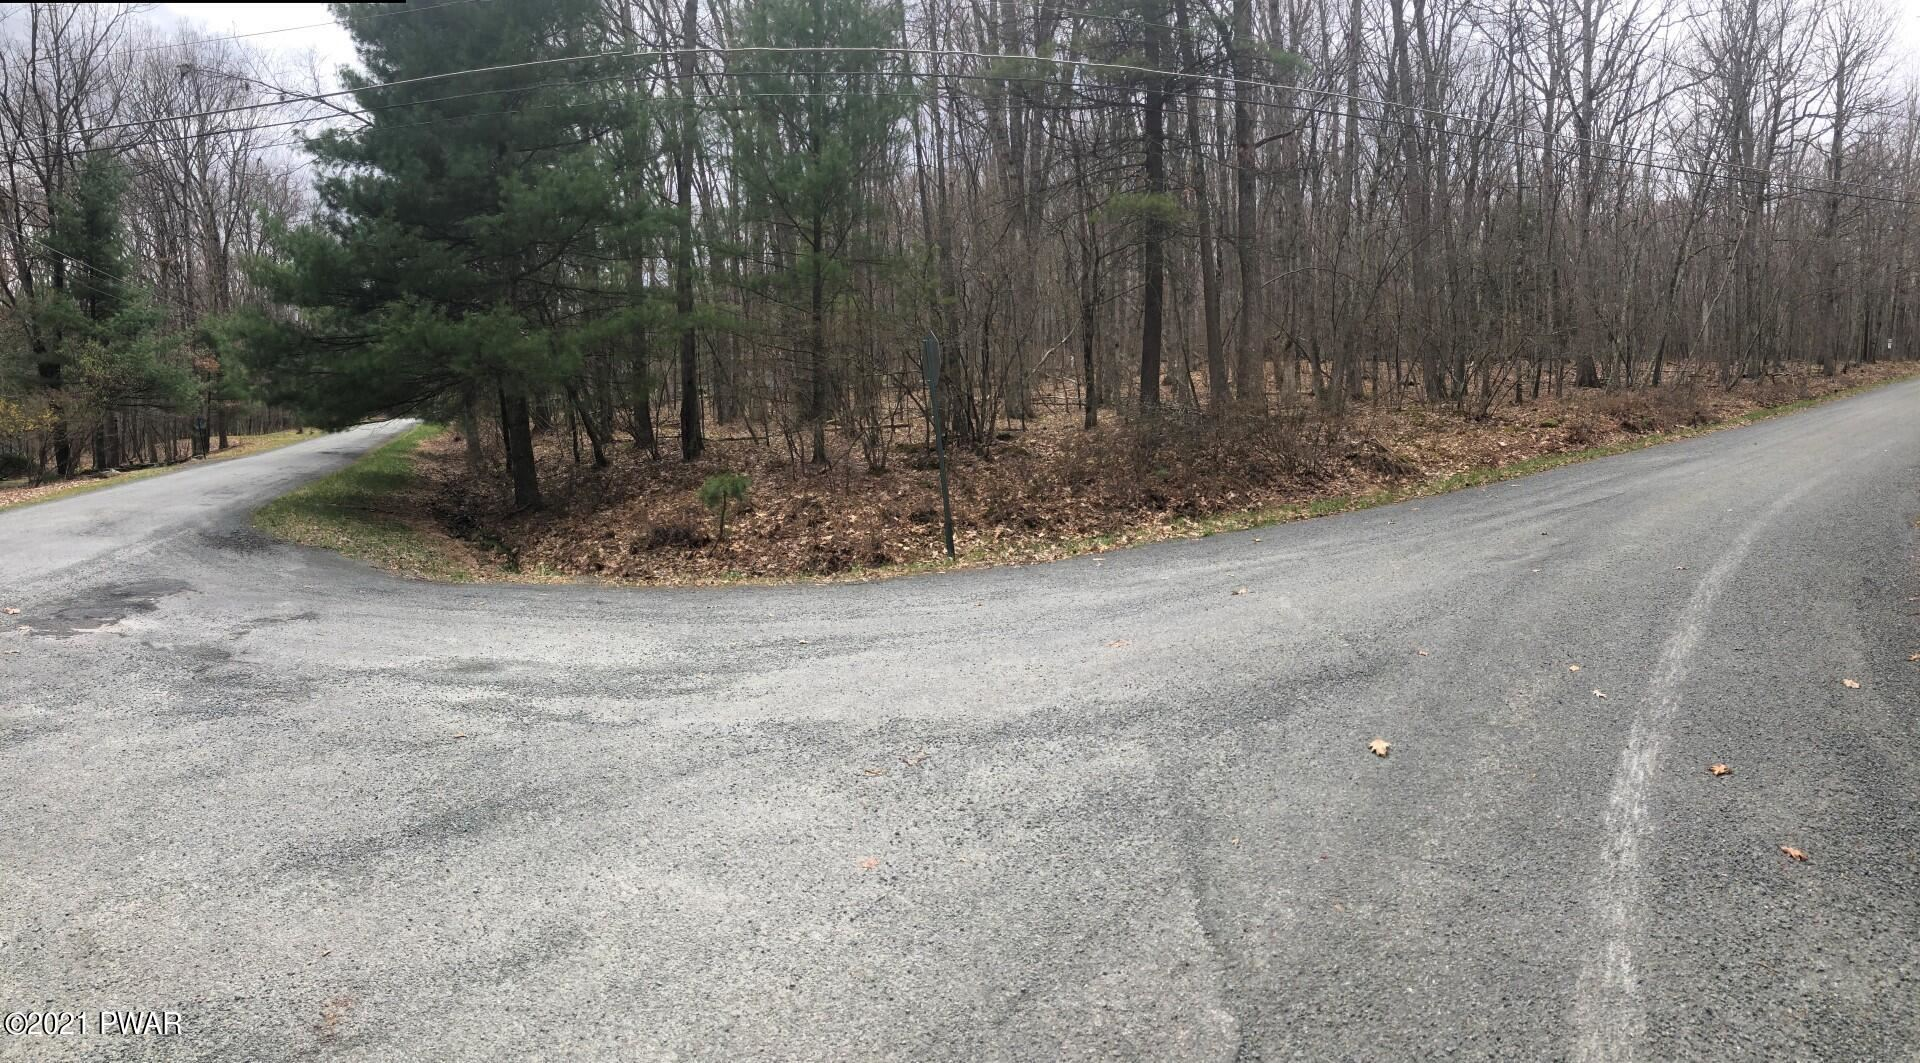 Photo of Lot 667 Blueberry Ln, Hawley, PA 18428 (MLS # 21-52)